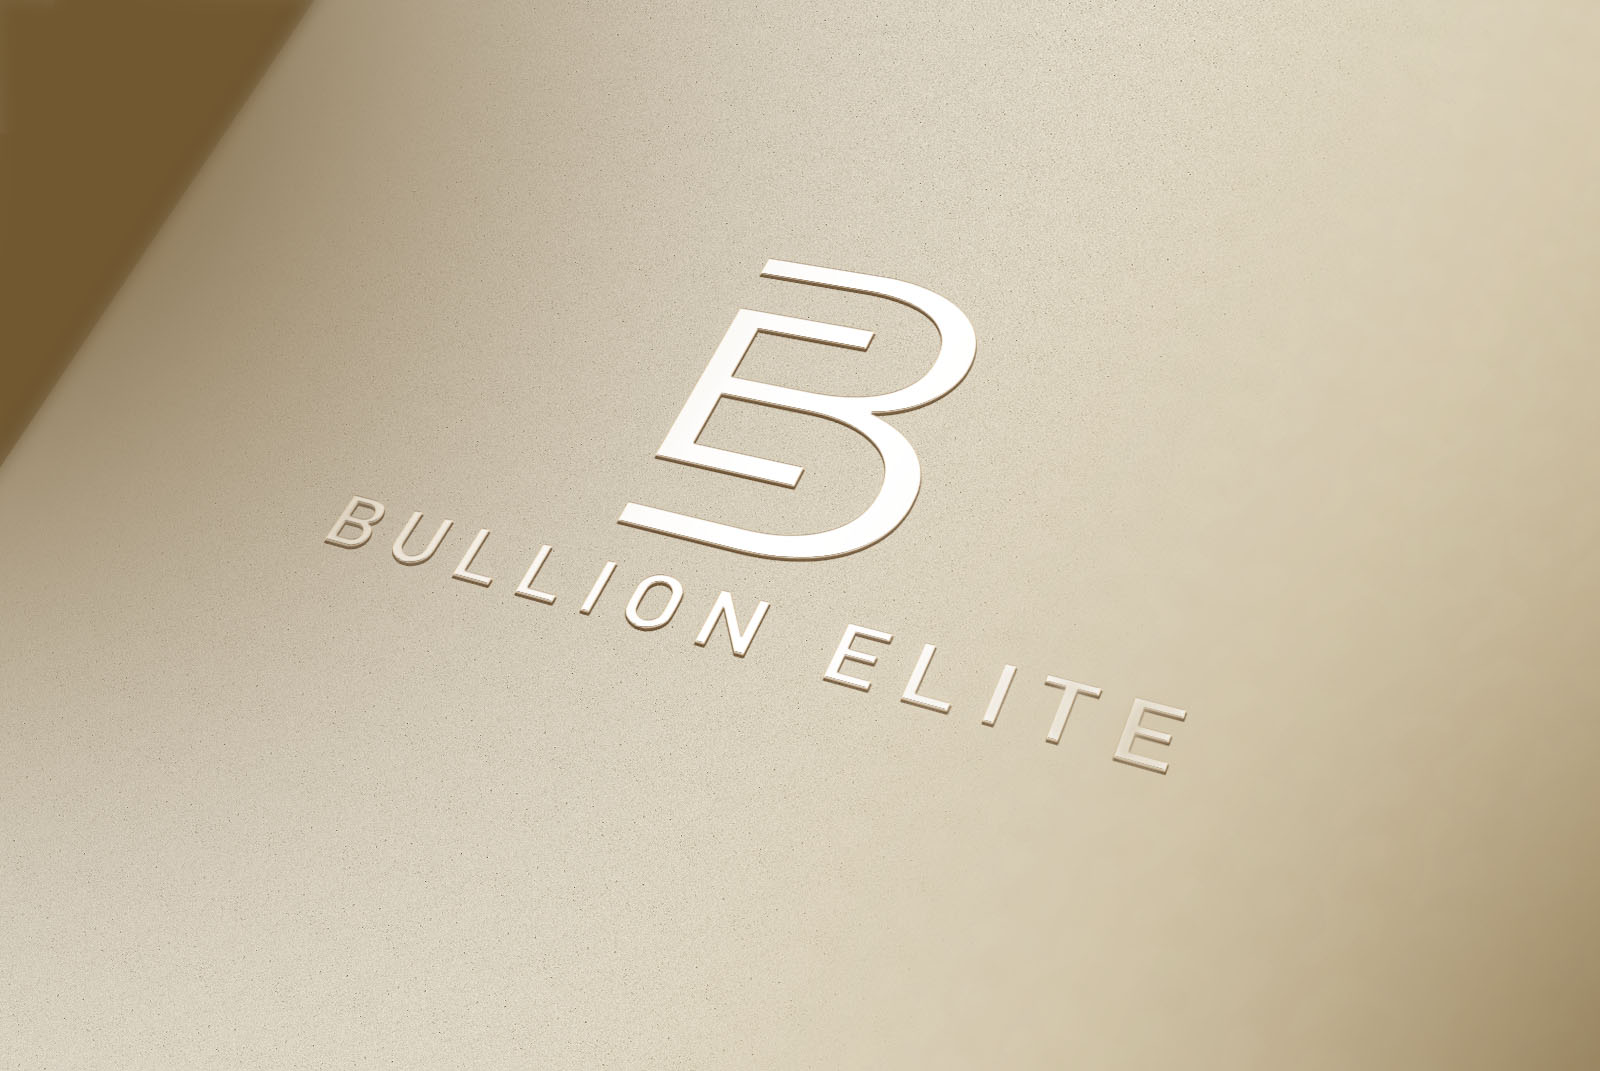 Bullion Elite logo design